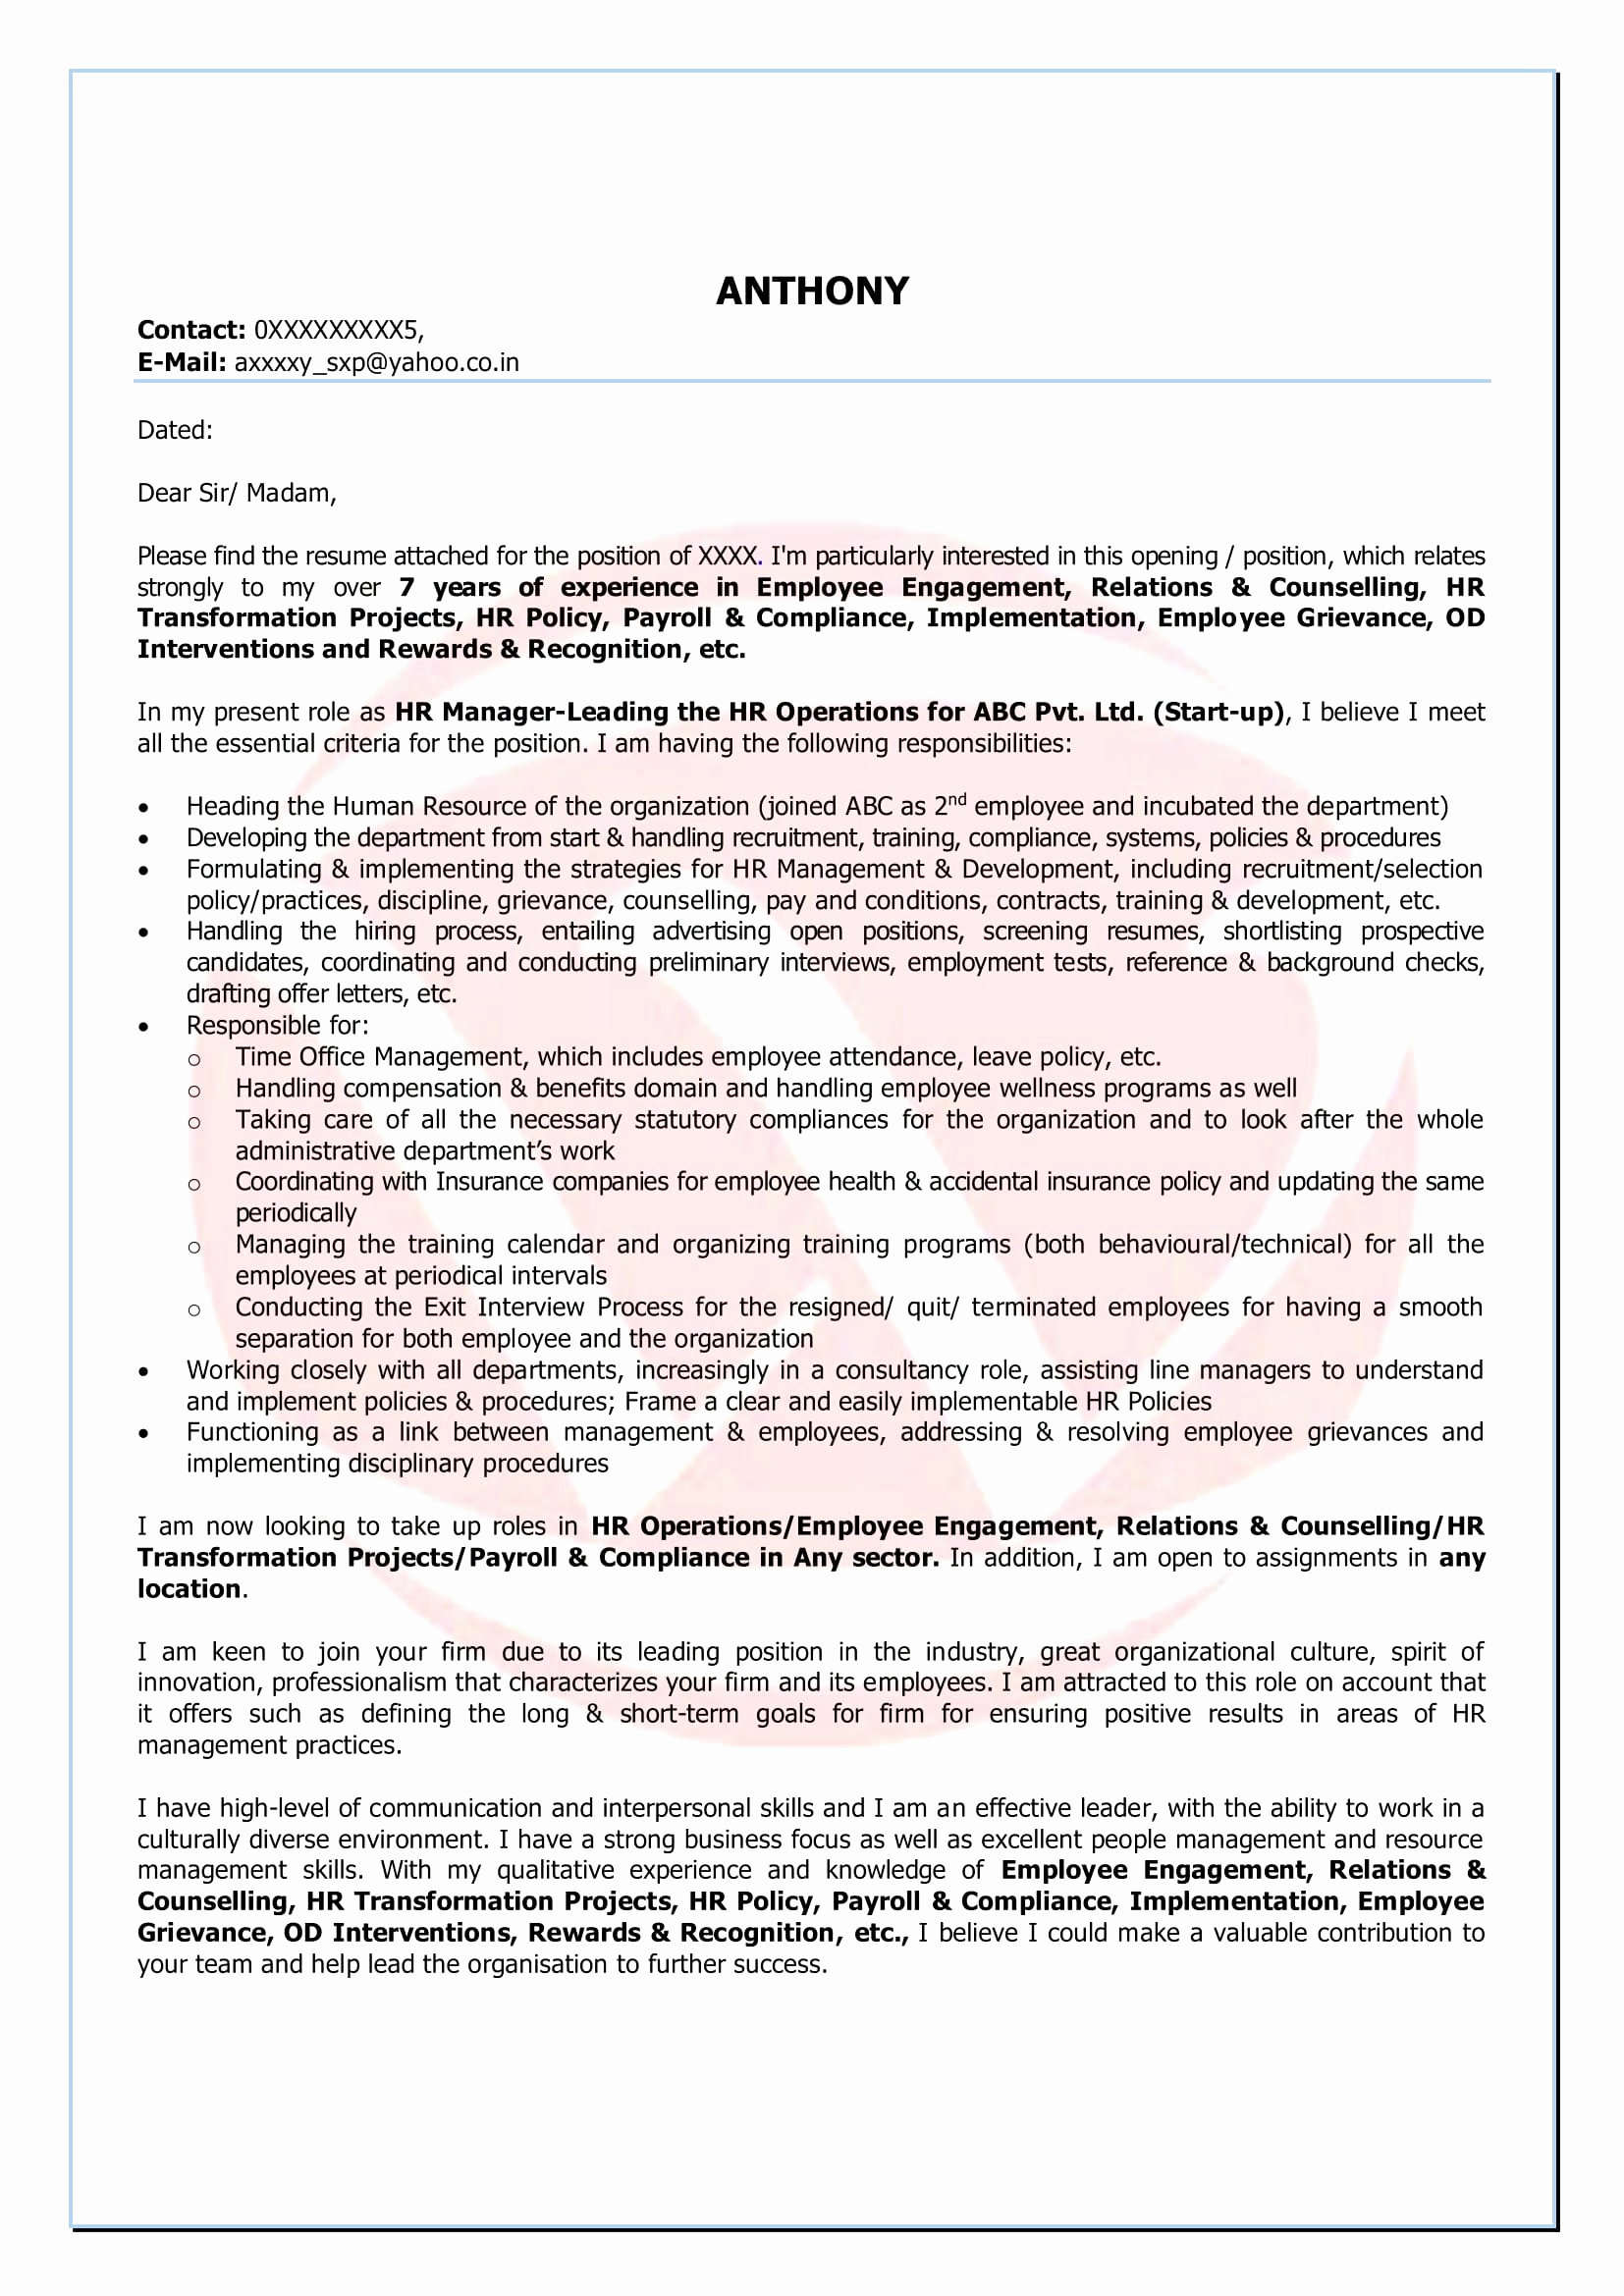 Legal Secretary Resume Template - Legal Secretary Resume Example the Best Way to Write Certified